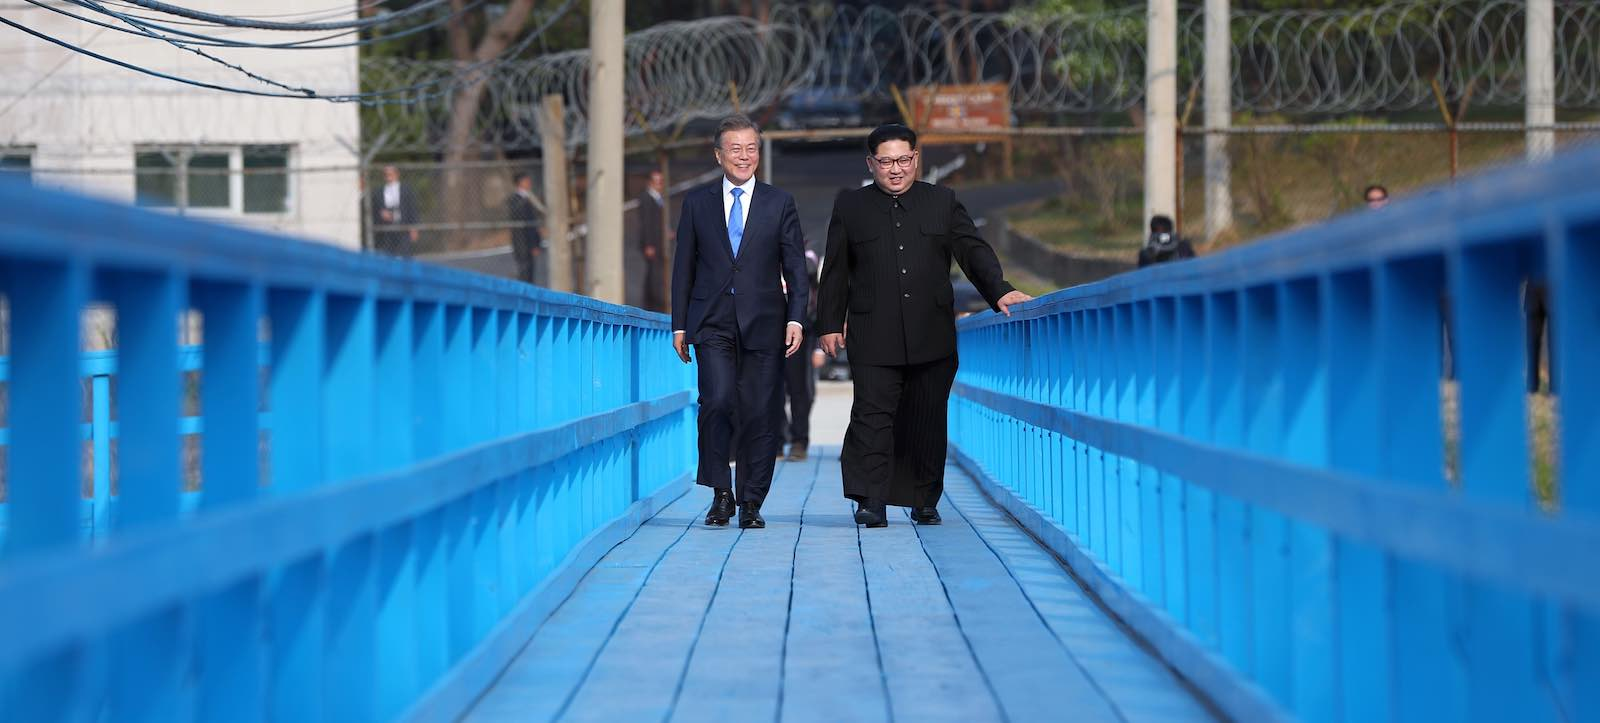 South Korean president Moon Jae-in and North Korean leader Kim Jong-un during their summit in April (Photo via Getty Images)